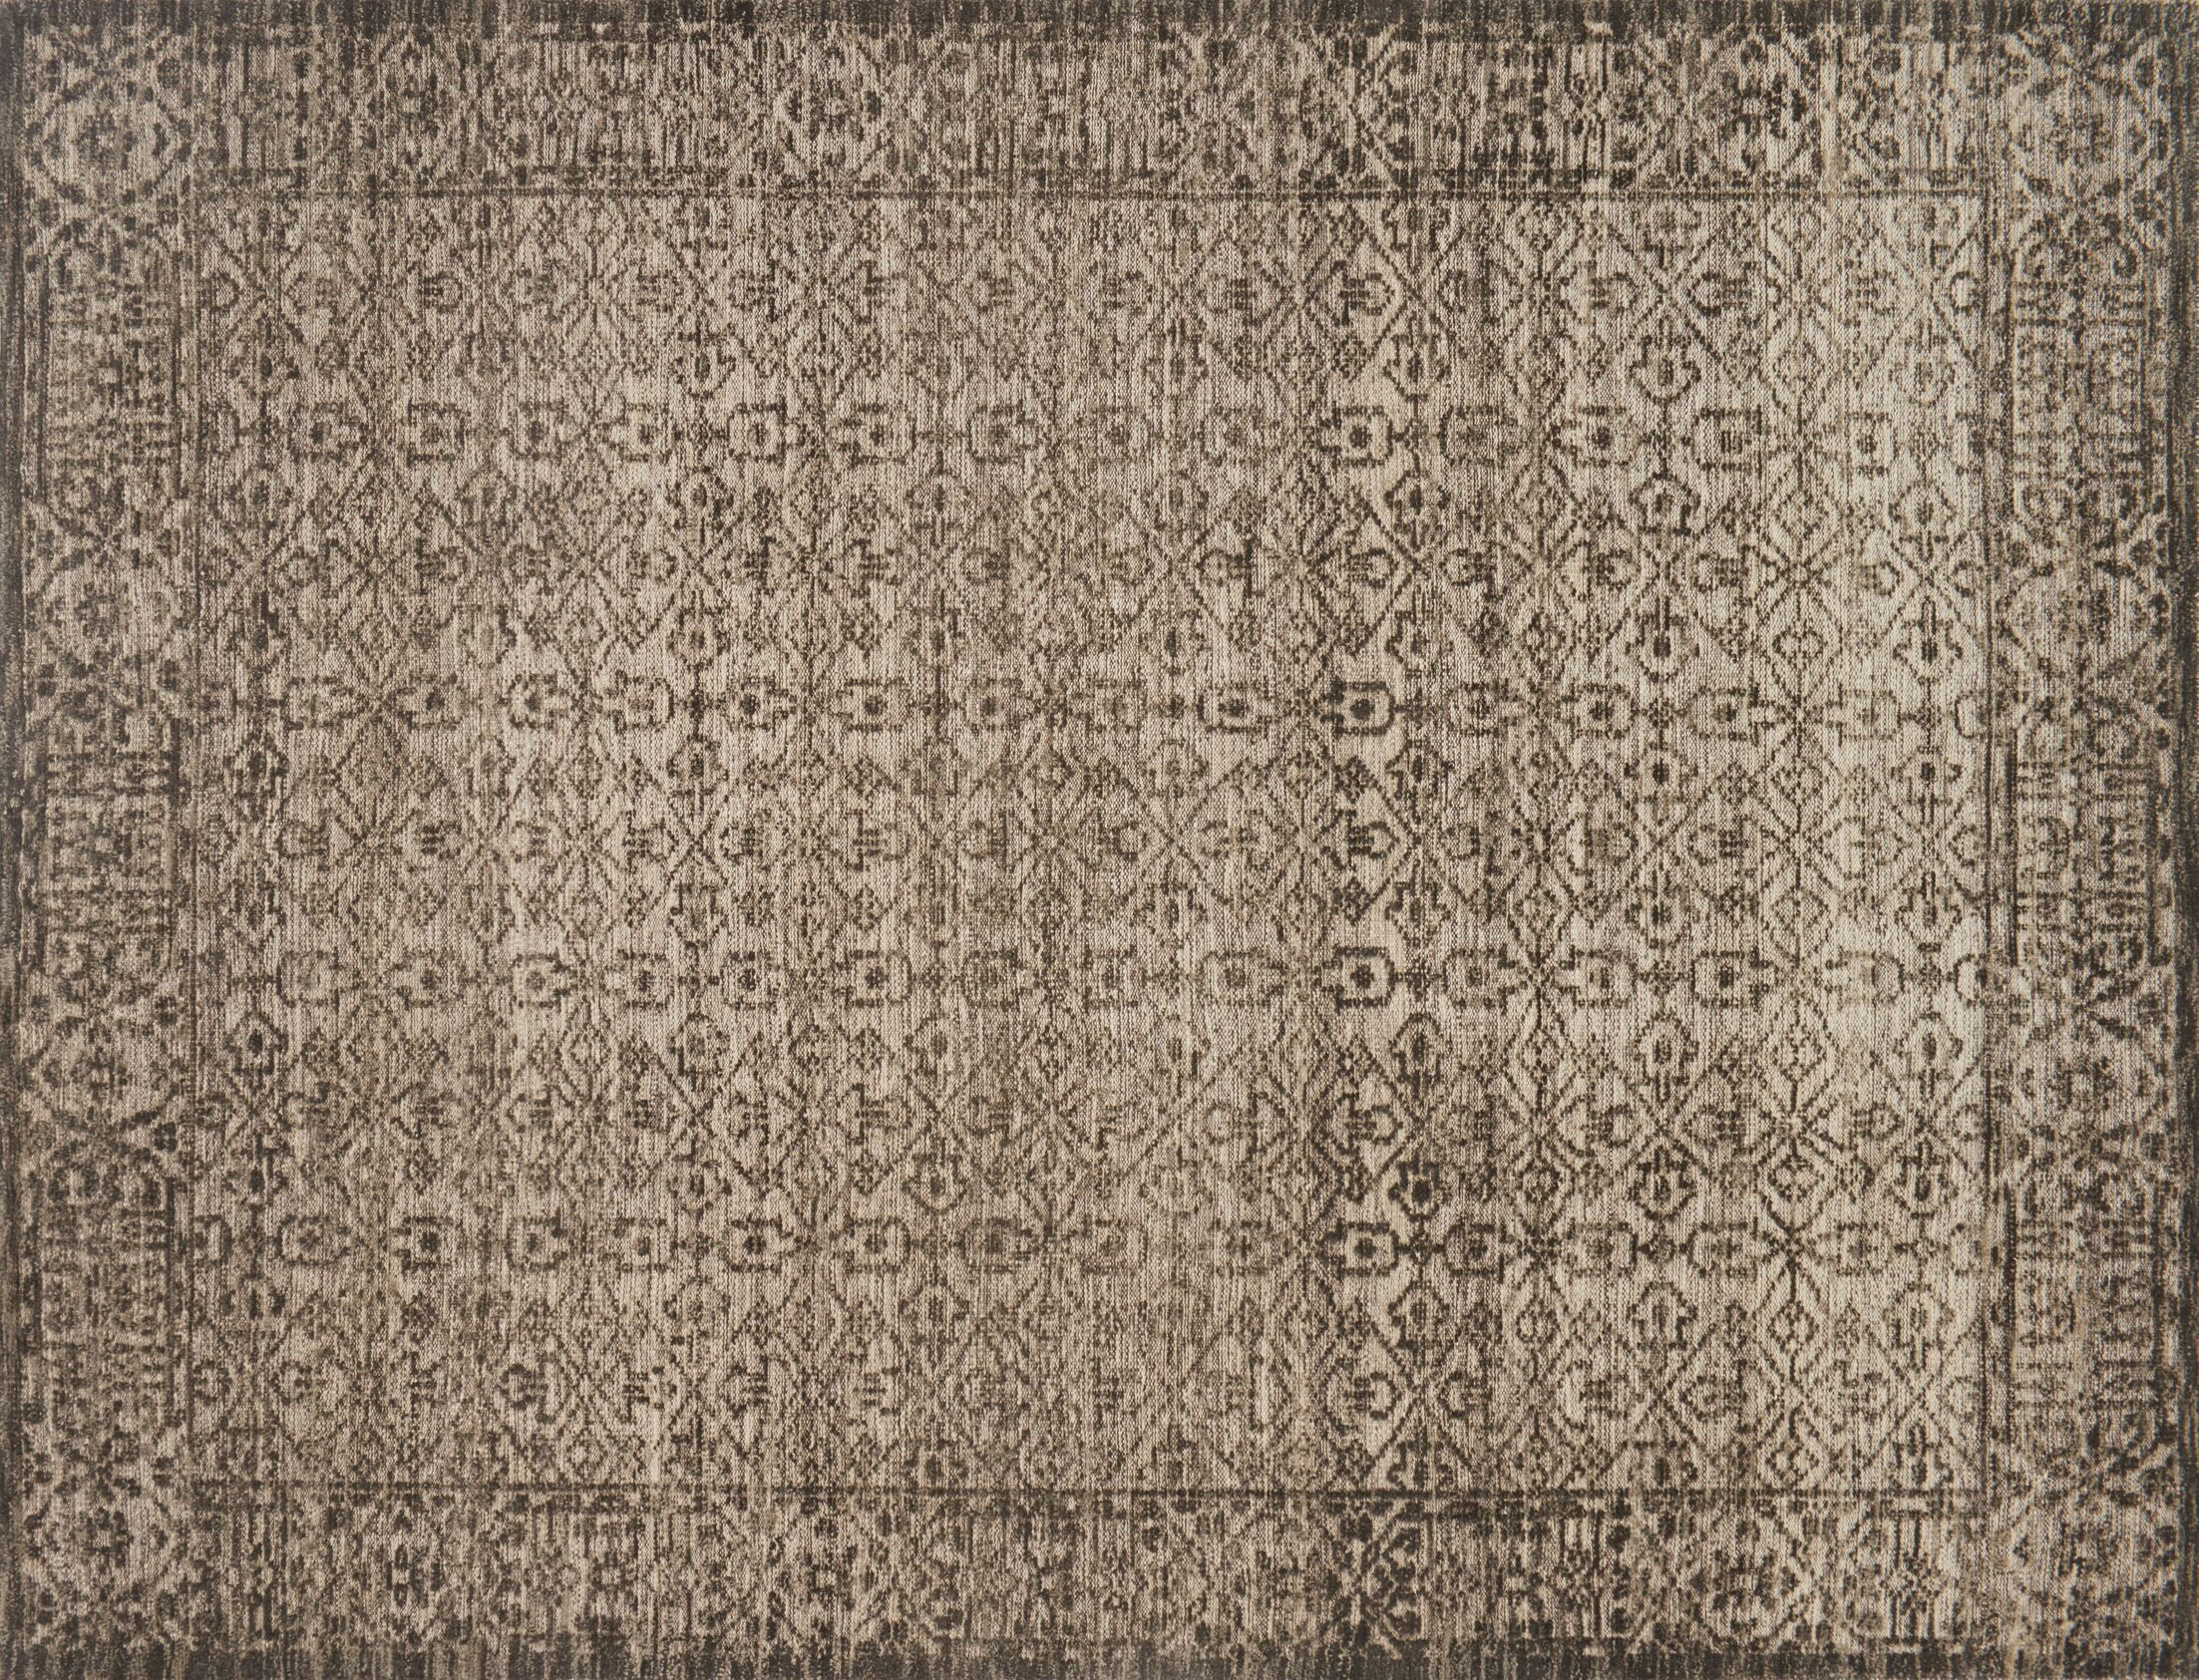 Pangle Hand-Knotted Brown Area Rug Rug Size: Rectangle 5'6